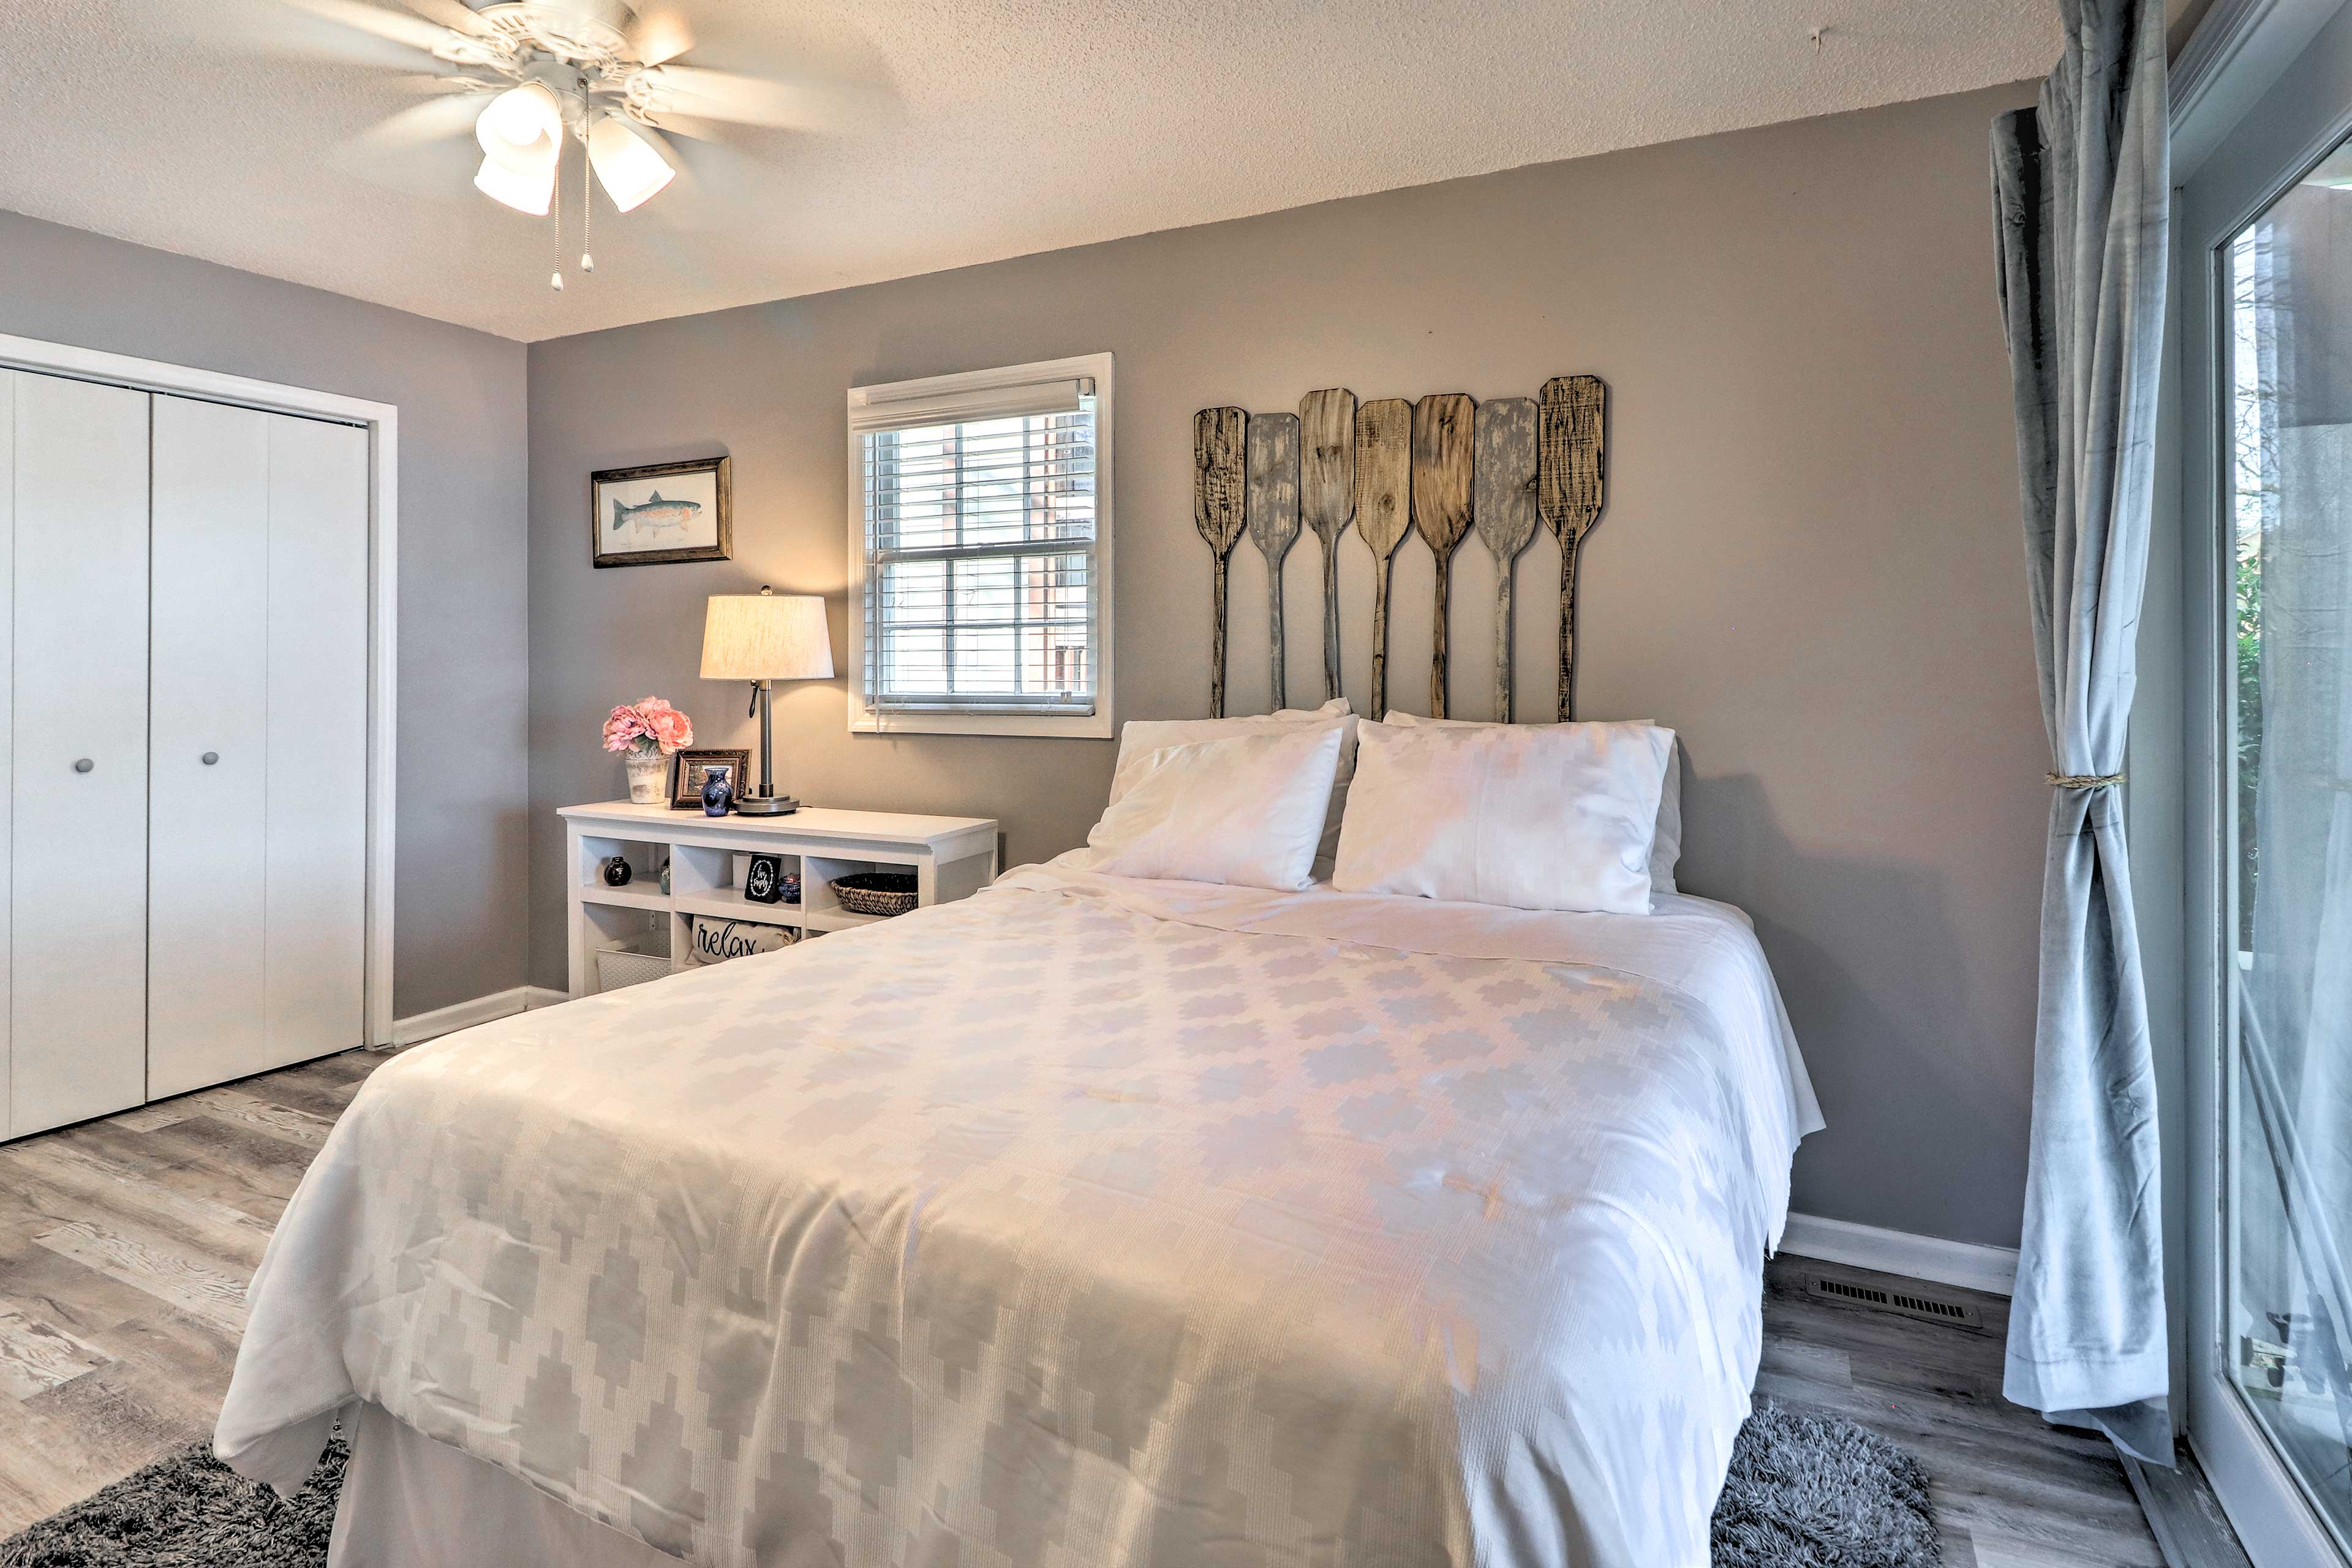 The master bedroom features a queen bed with space for 2.